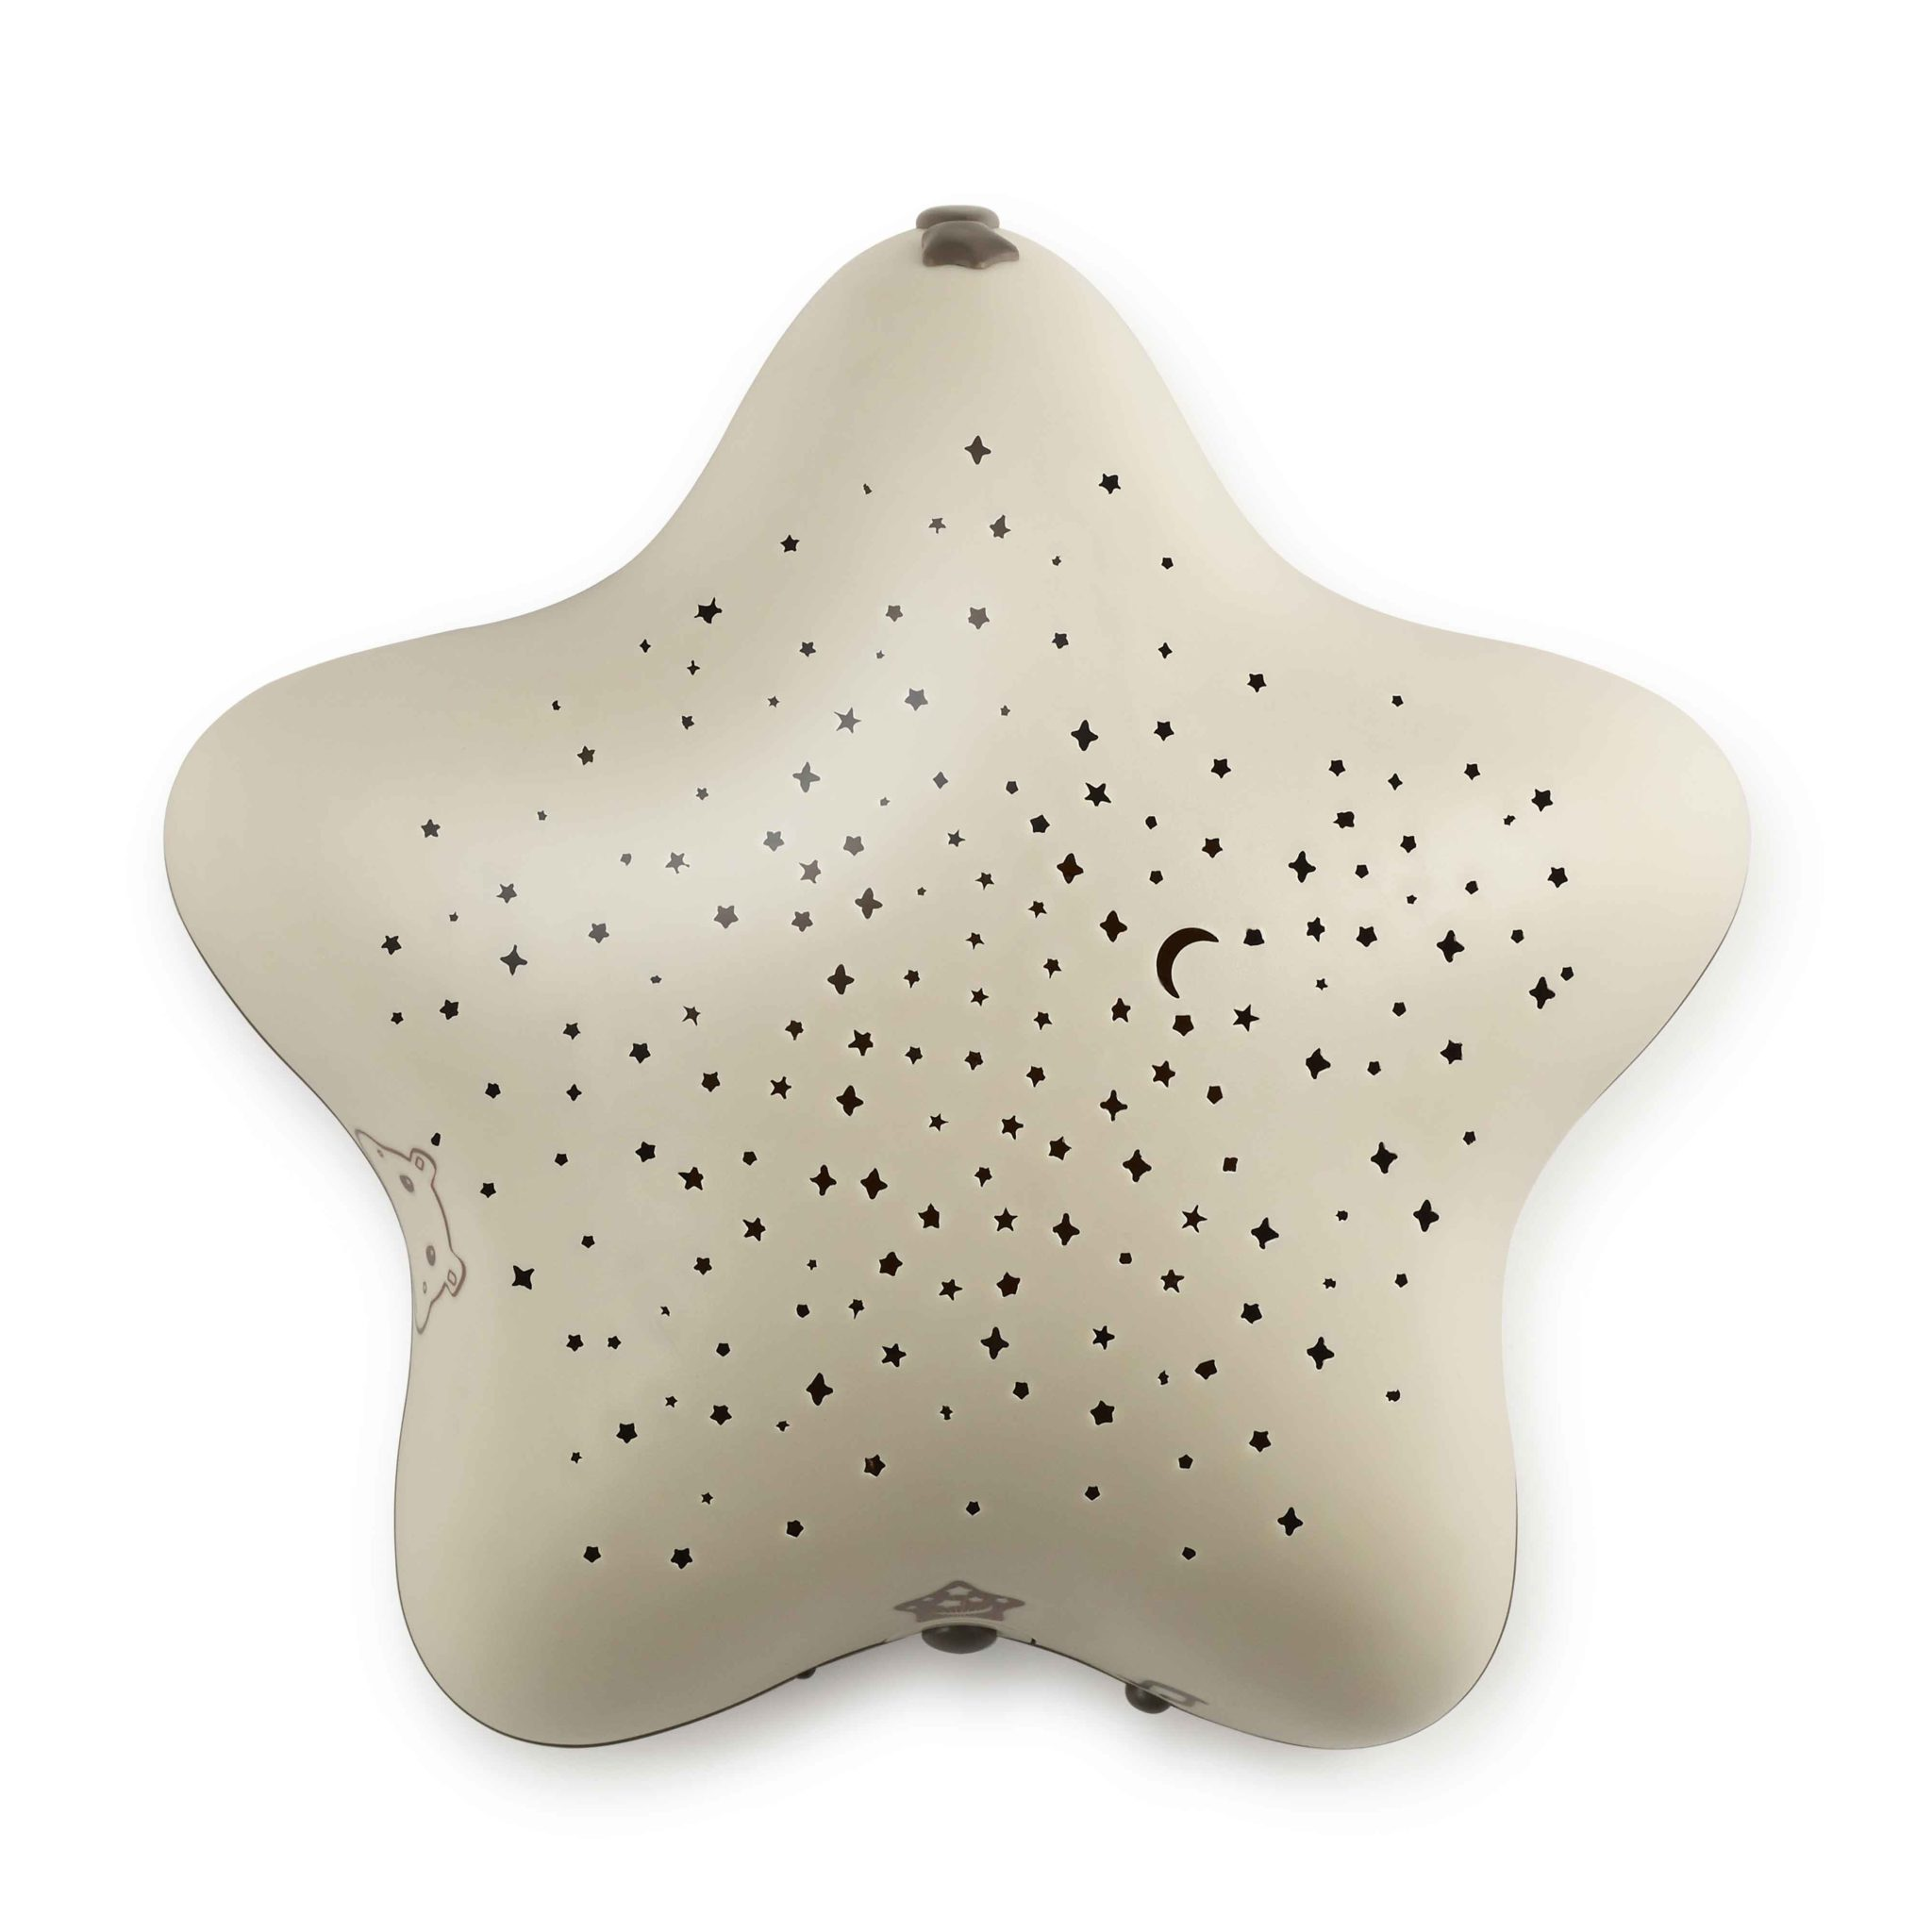 Pabobo Musical Star Projector (Beige). Charged Via USB